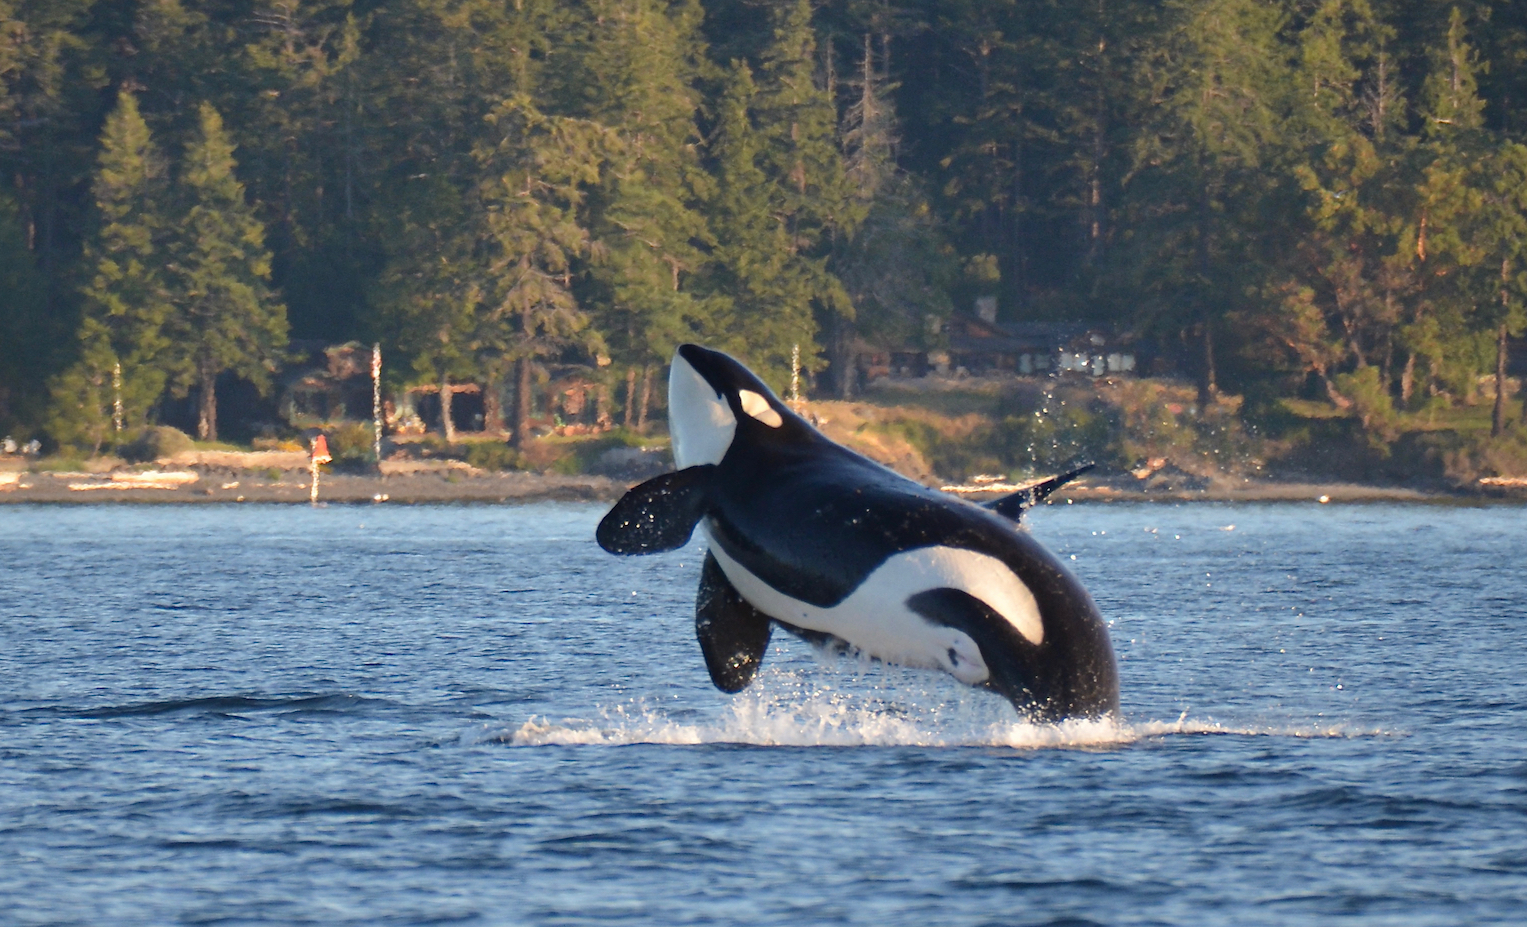 The endangered Southern Resident killer whale of the Pacific Northwest has been in a state of steady decline in recent years.